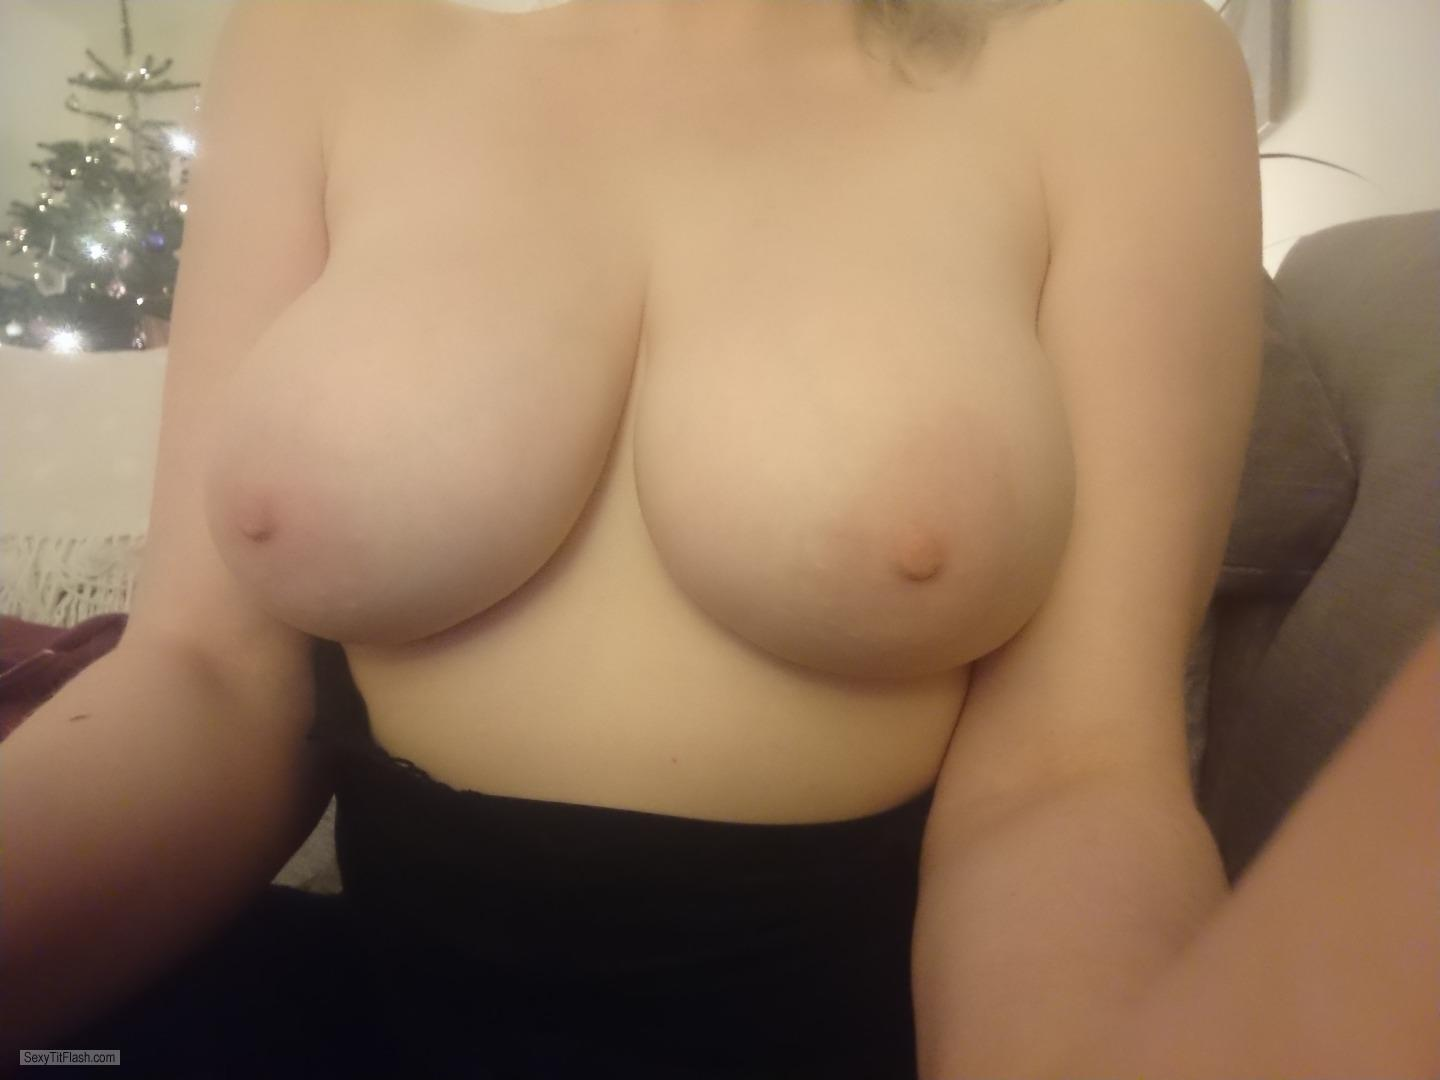 Tit Flash: My Big Tits - Titsfordays from United Kingdom